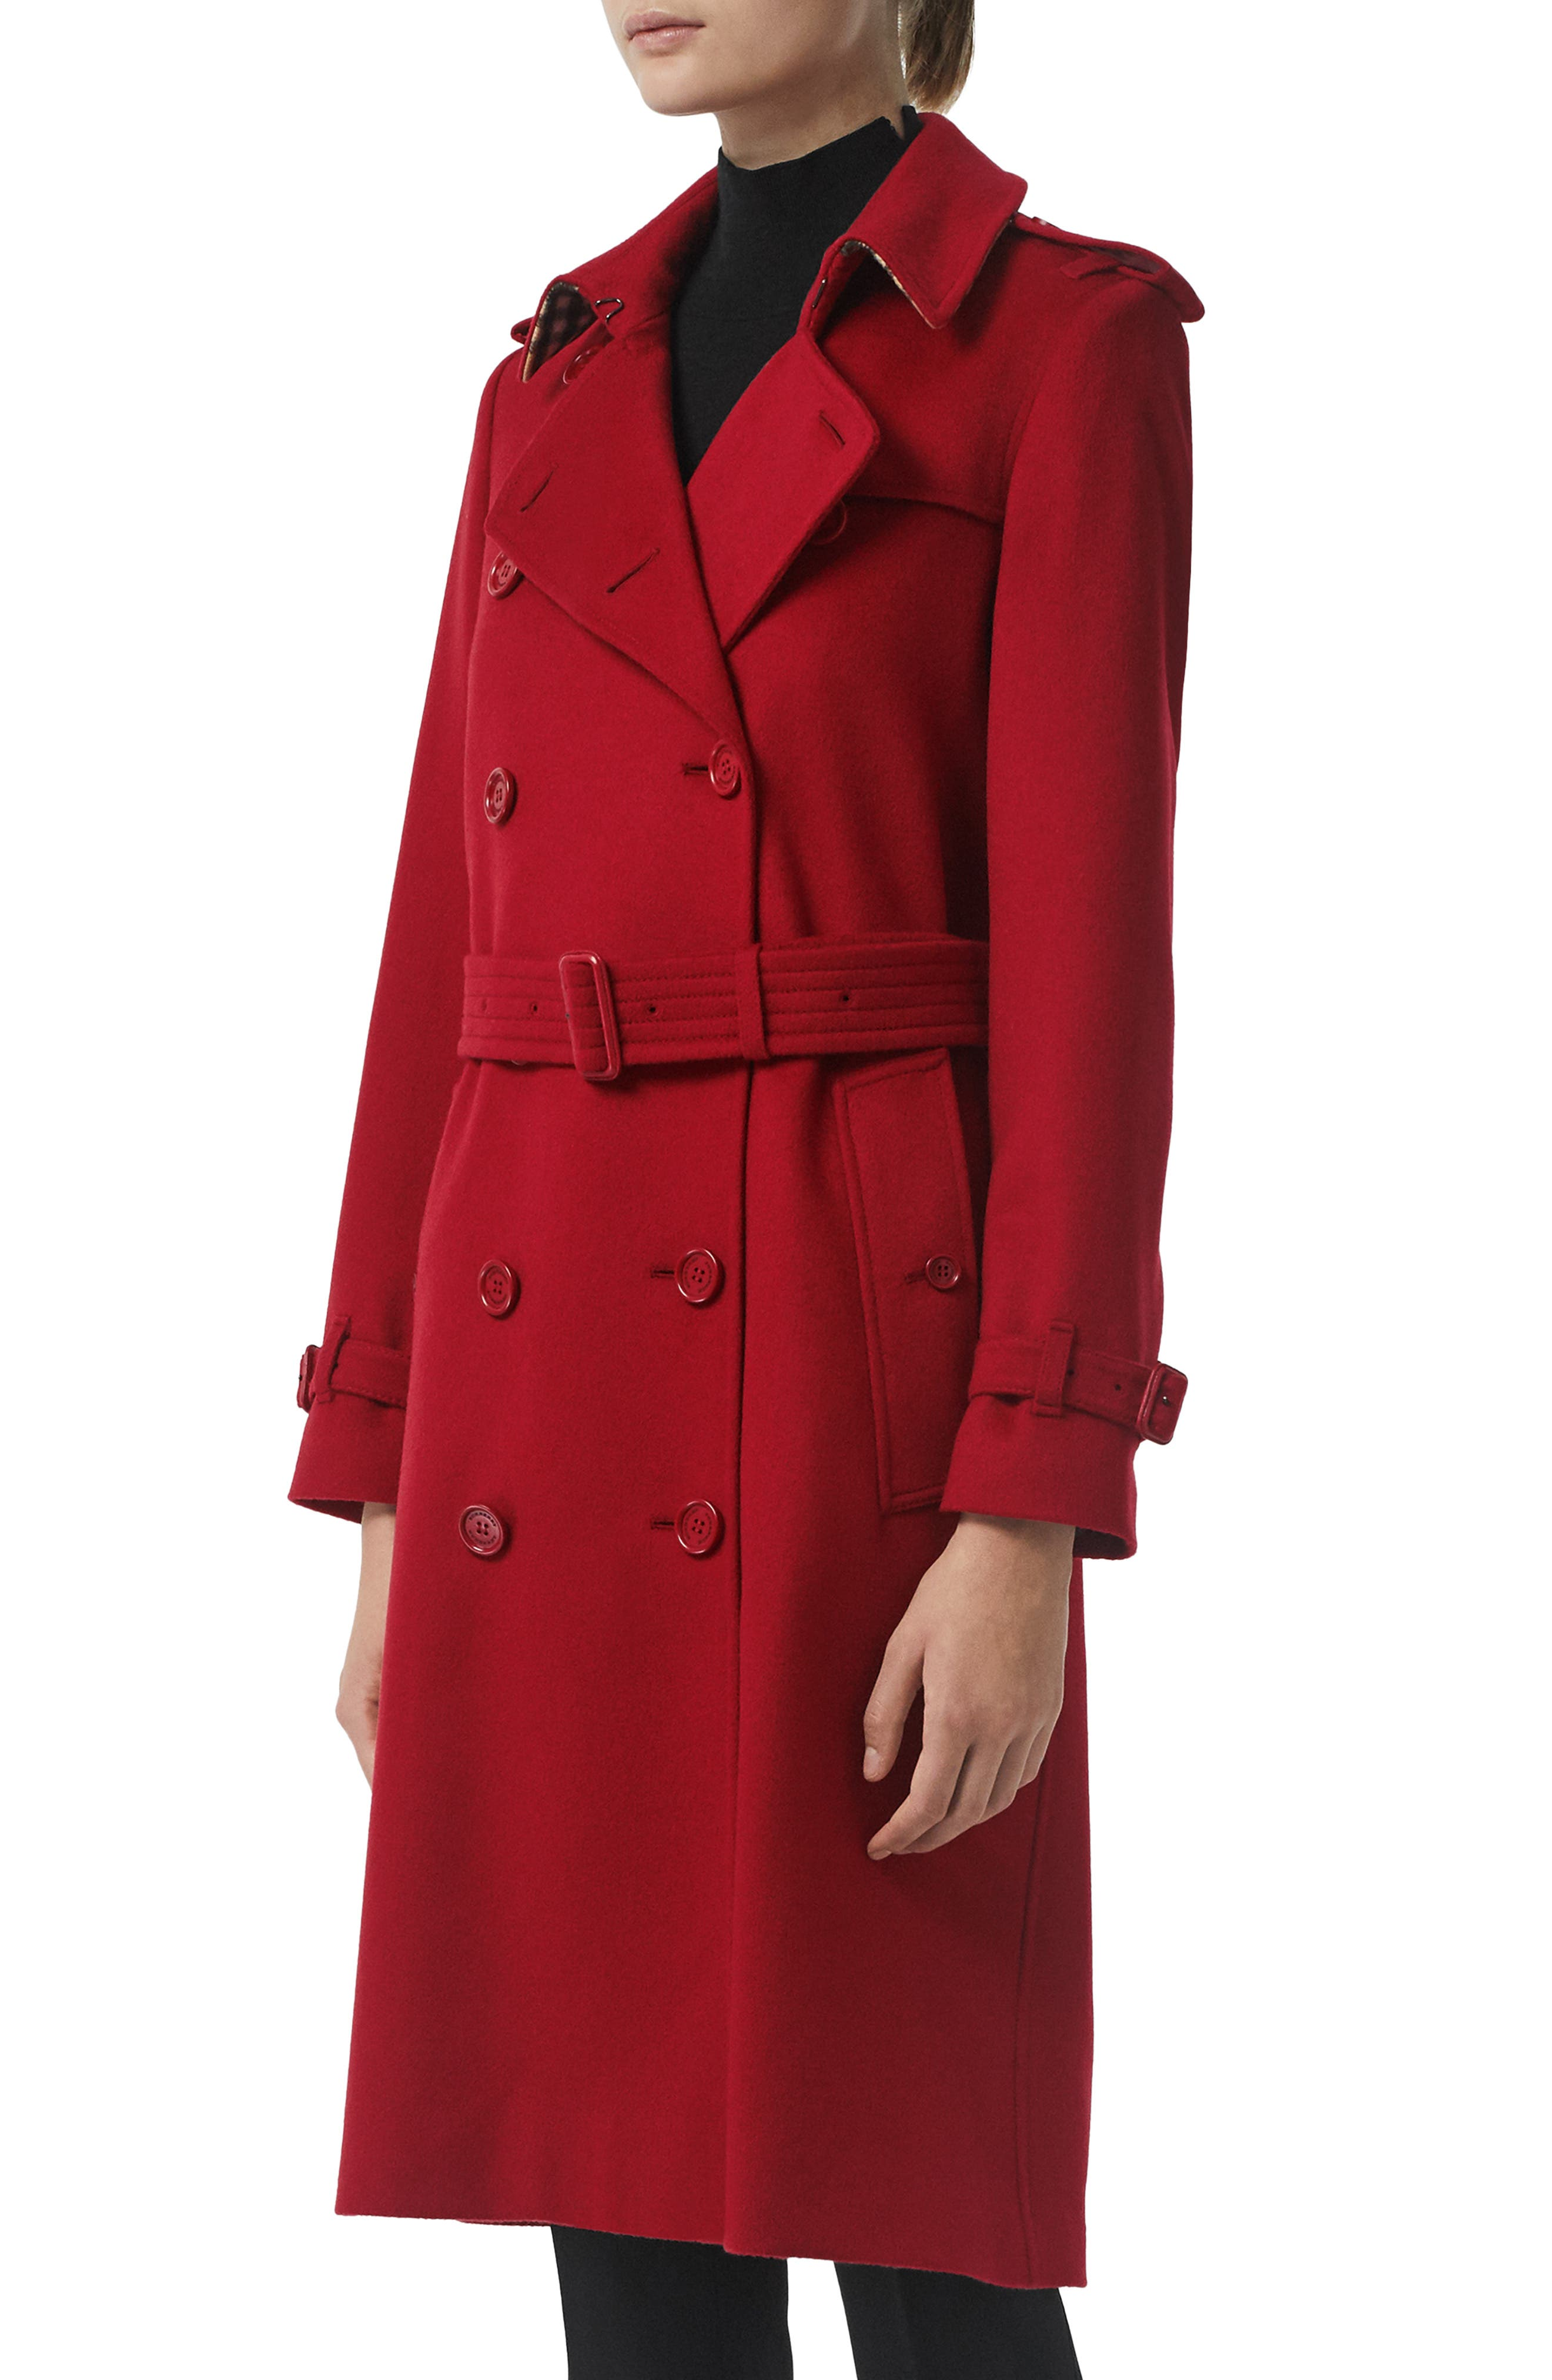 Kensington Cashmere Trench Coat,                             Alternate thumbnail 3, color,                             PARADE RED